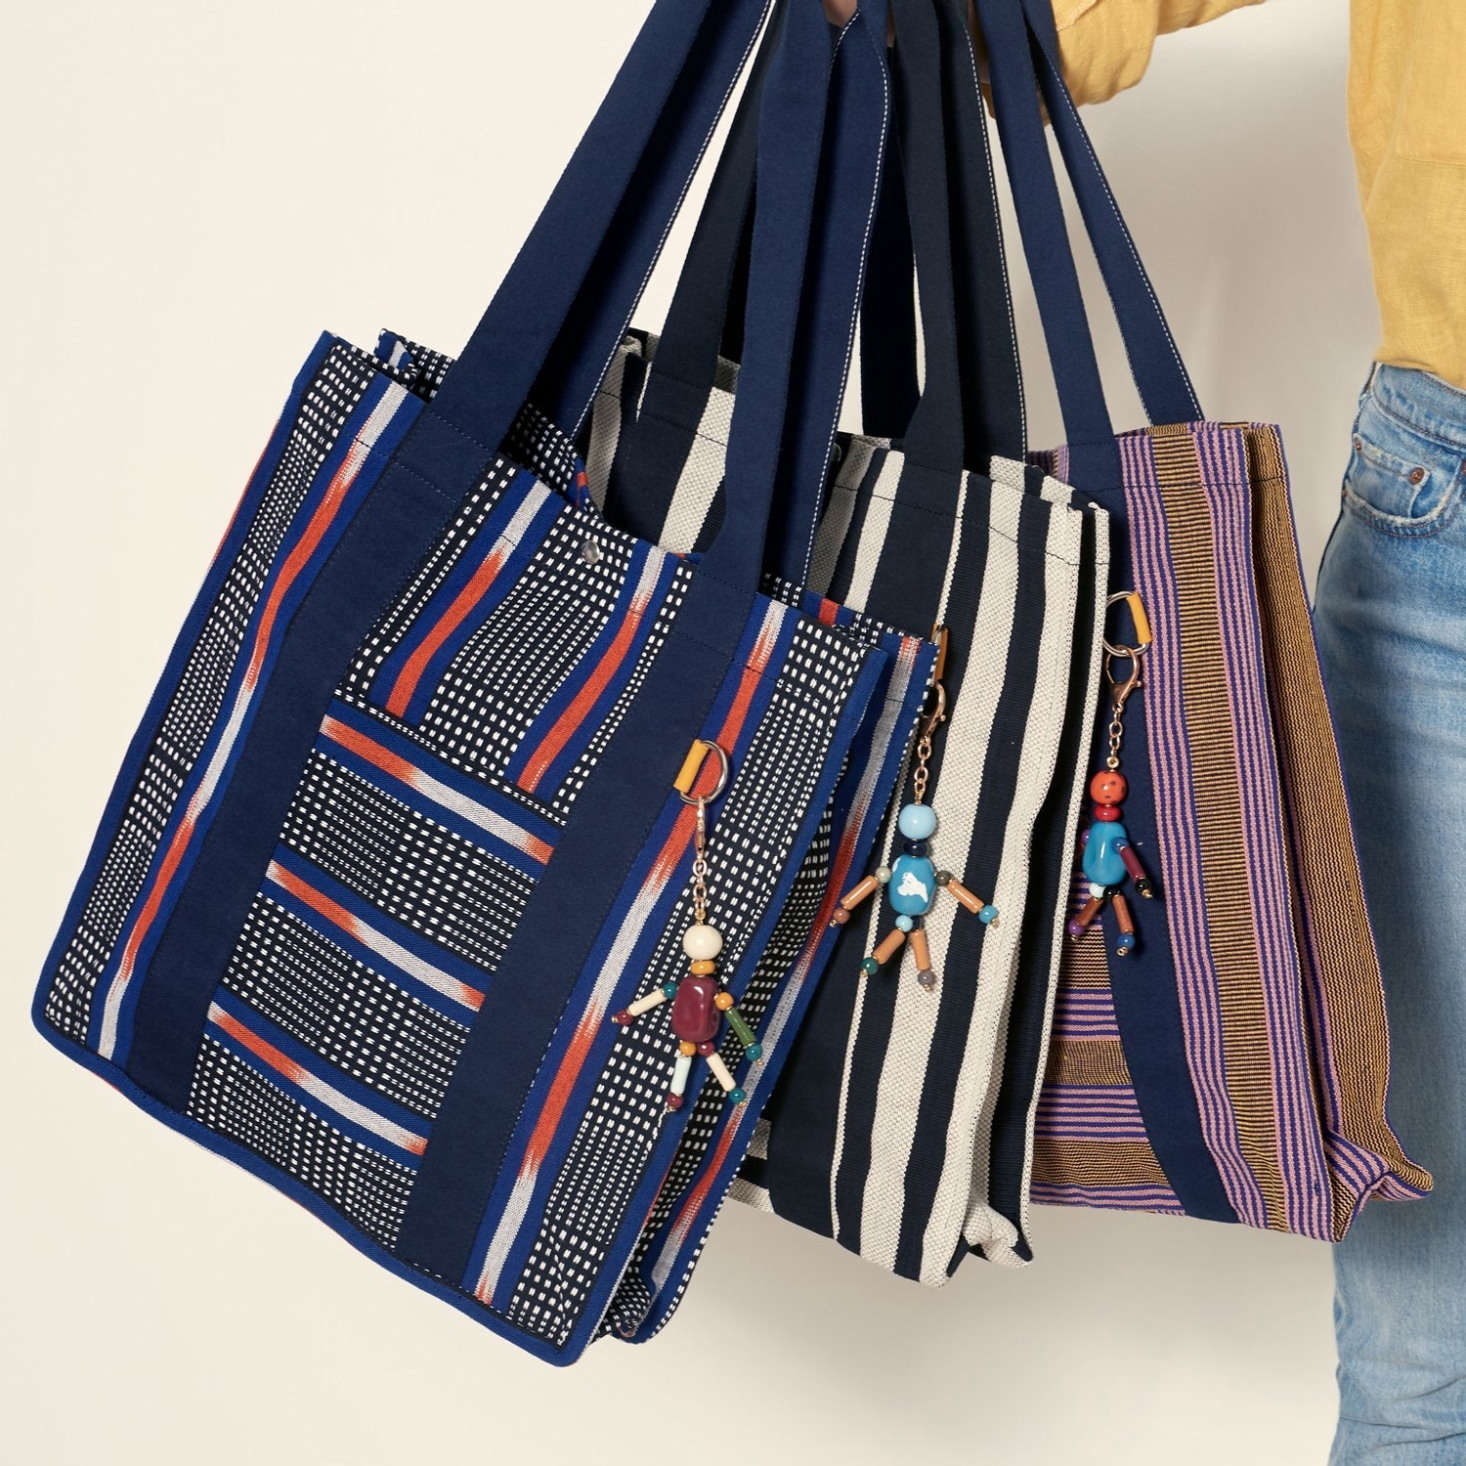 Goodee's own Bassi Market Tote ($9) is made of organic cotton and created with Cartiera, an Italian social cooperative dedicated to empowering asylum seekers and migrants. It comes in four colorways and has a metal ring to keep your keys handy.